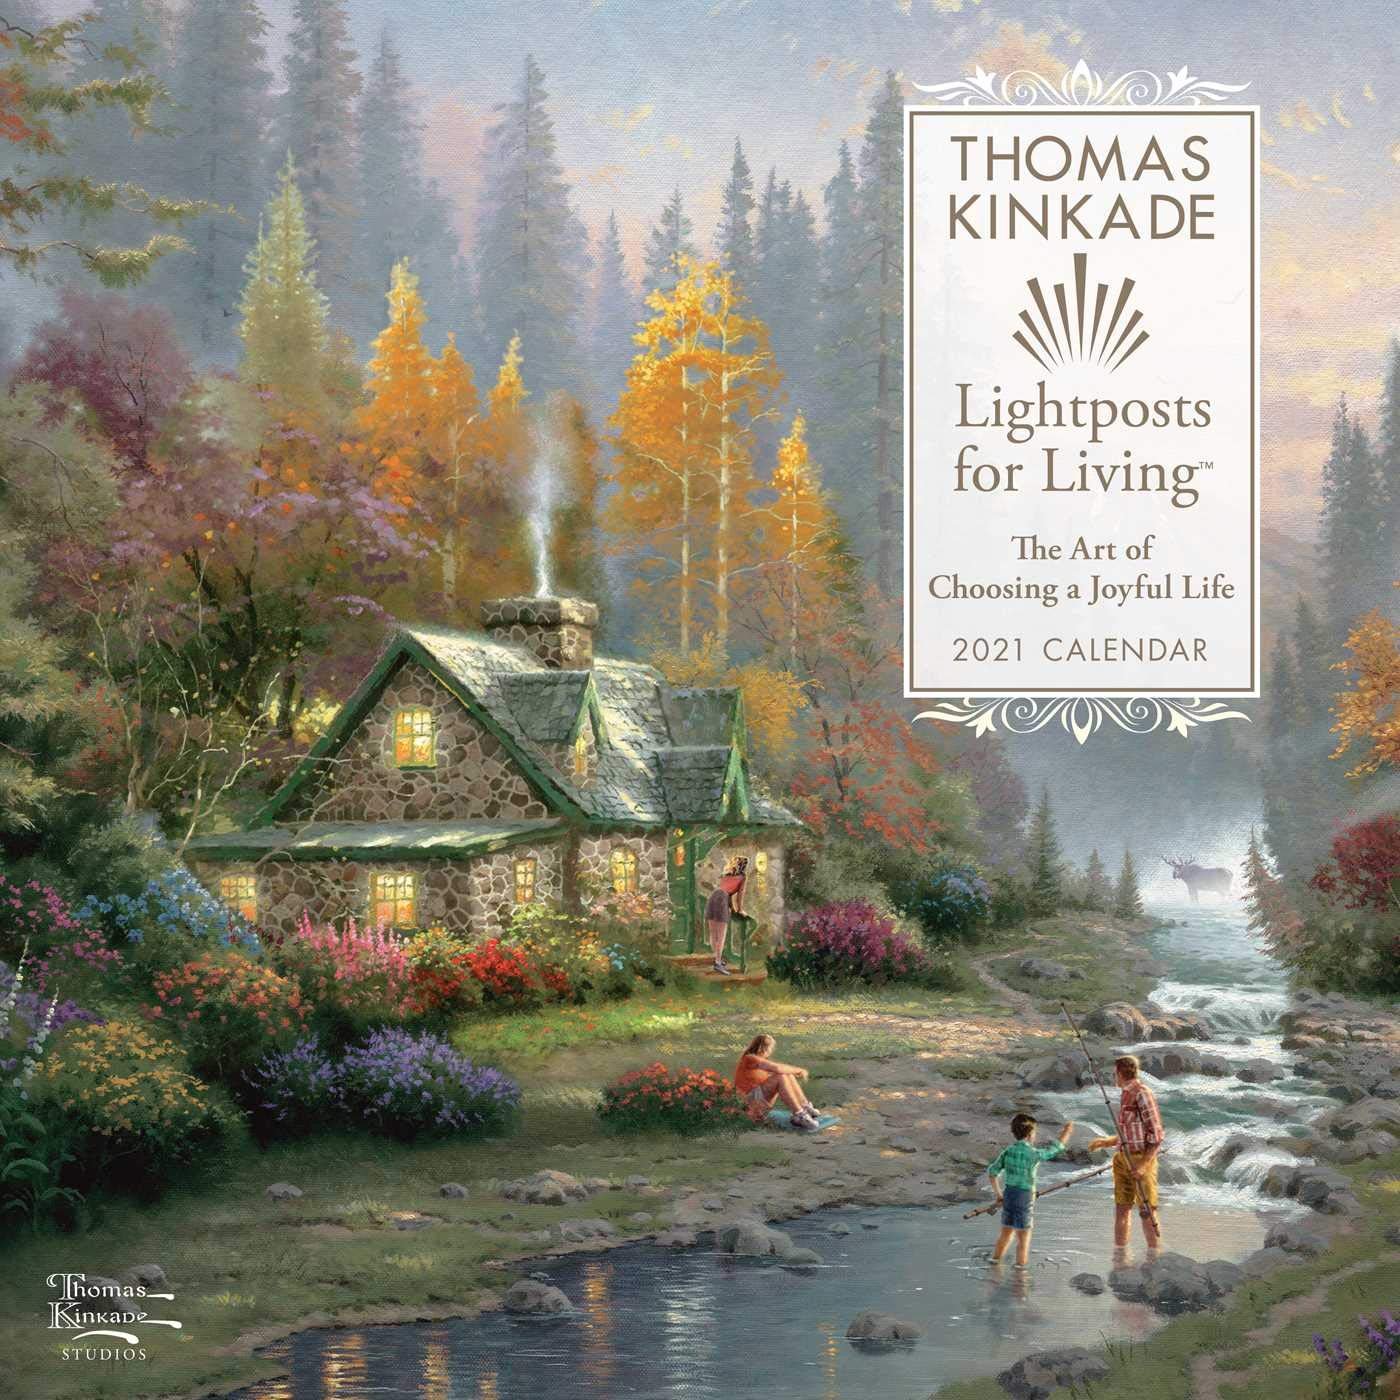 Thomas Kinkade Lightposts for Living 2021 Wall Calendar: Kinkade